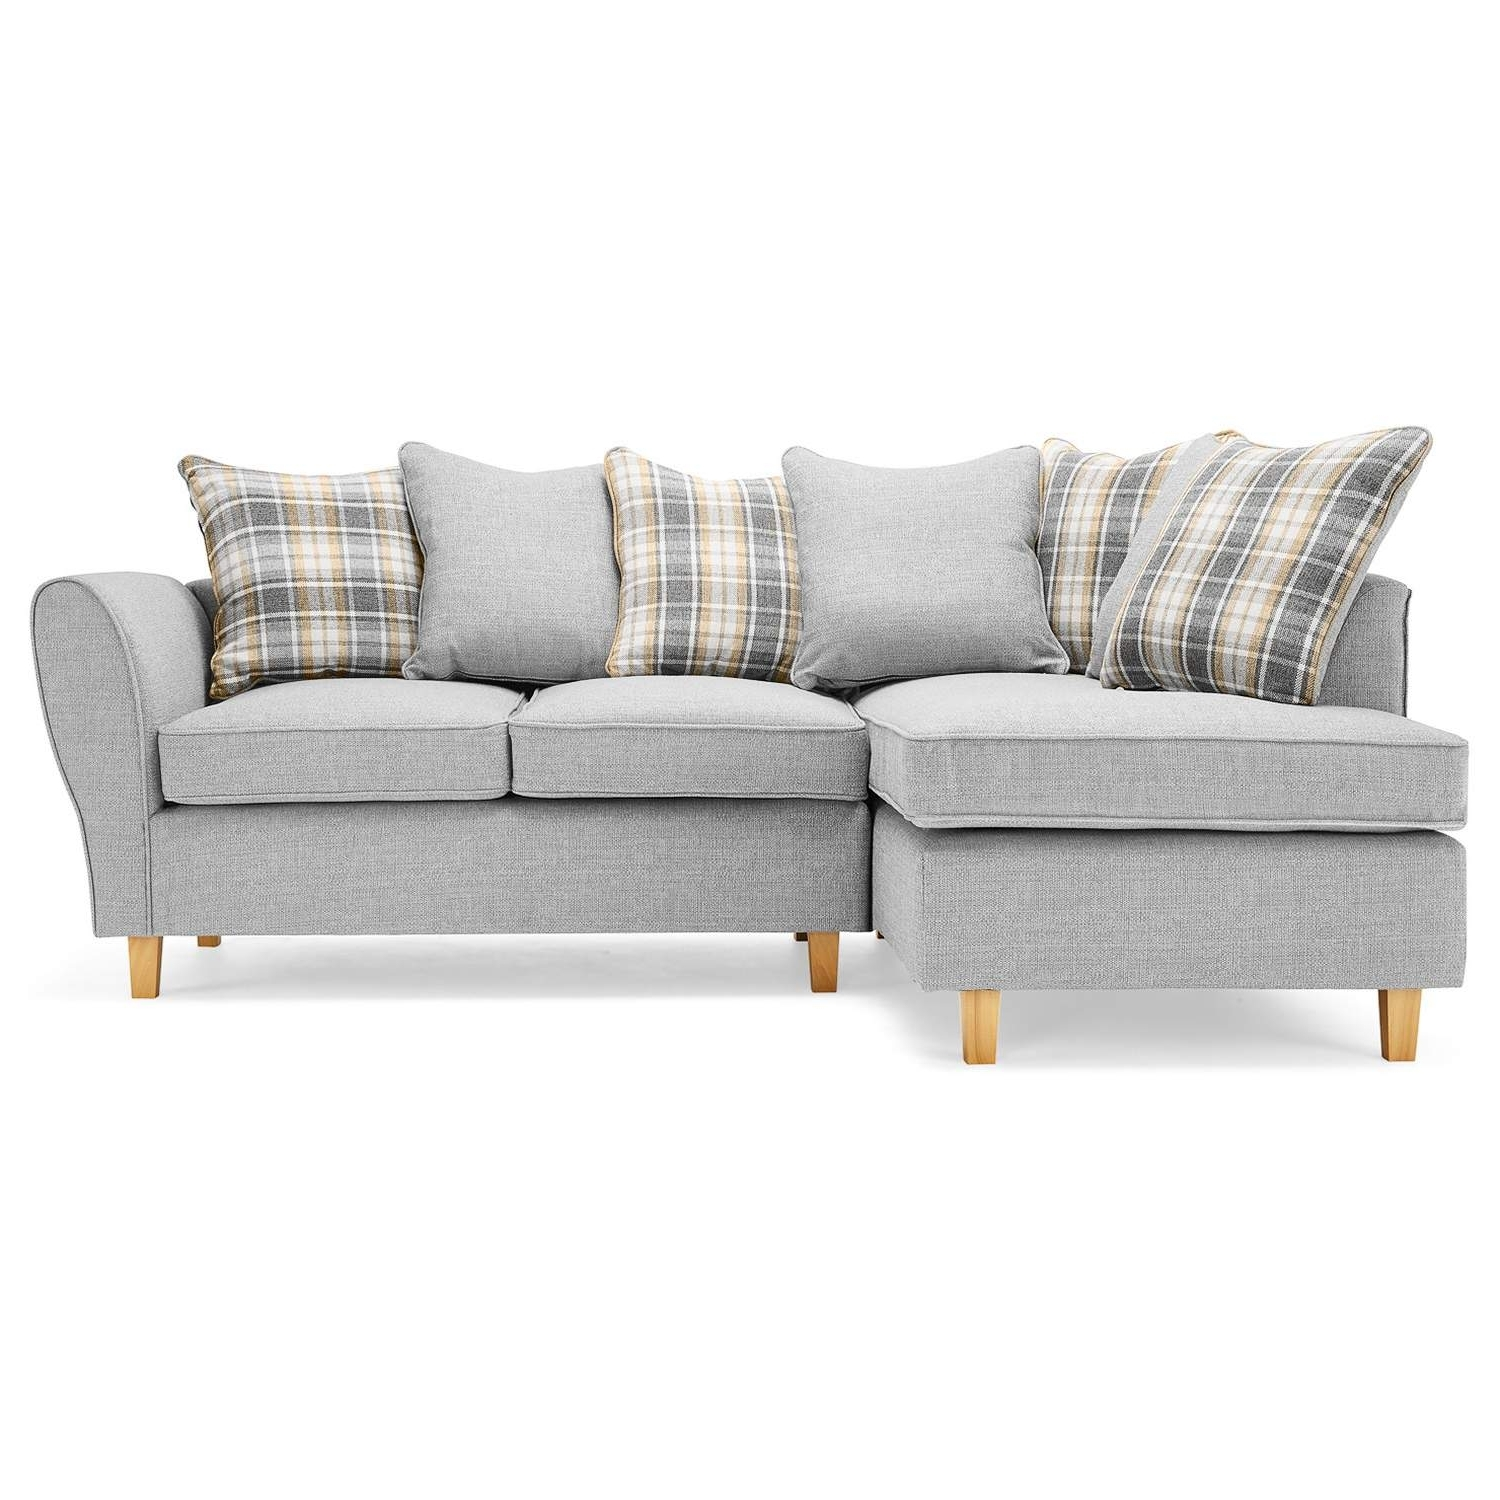 Current Fabric Corner Sofas For Ashbourne Fabric Corner Sofa – Next Day Delivery Ashbourne Fabric (View 5 of 20)